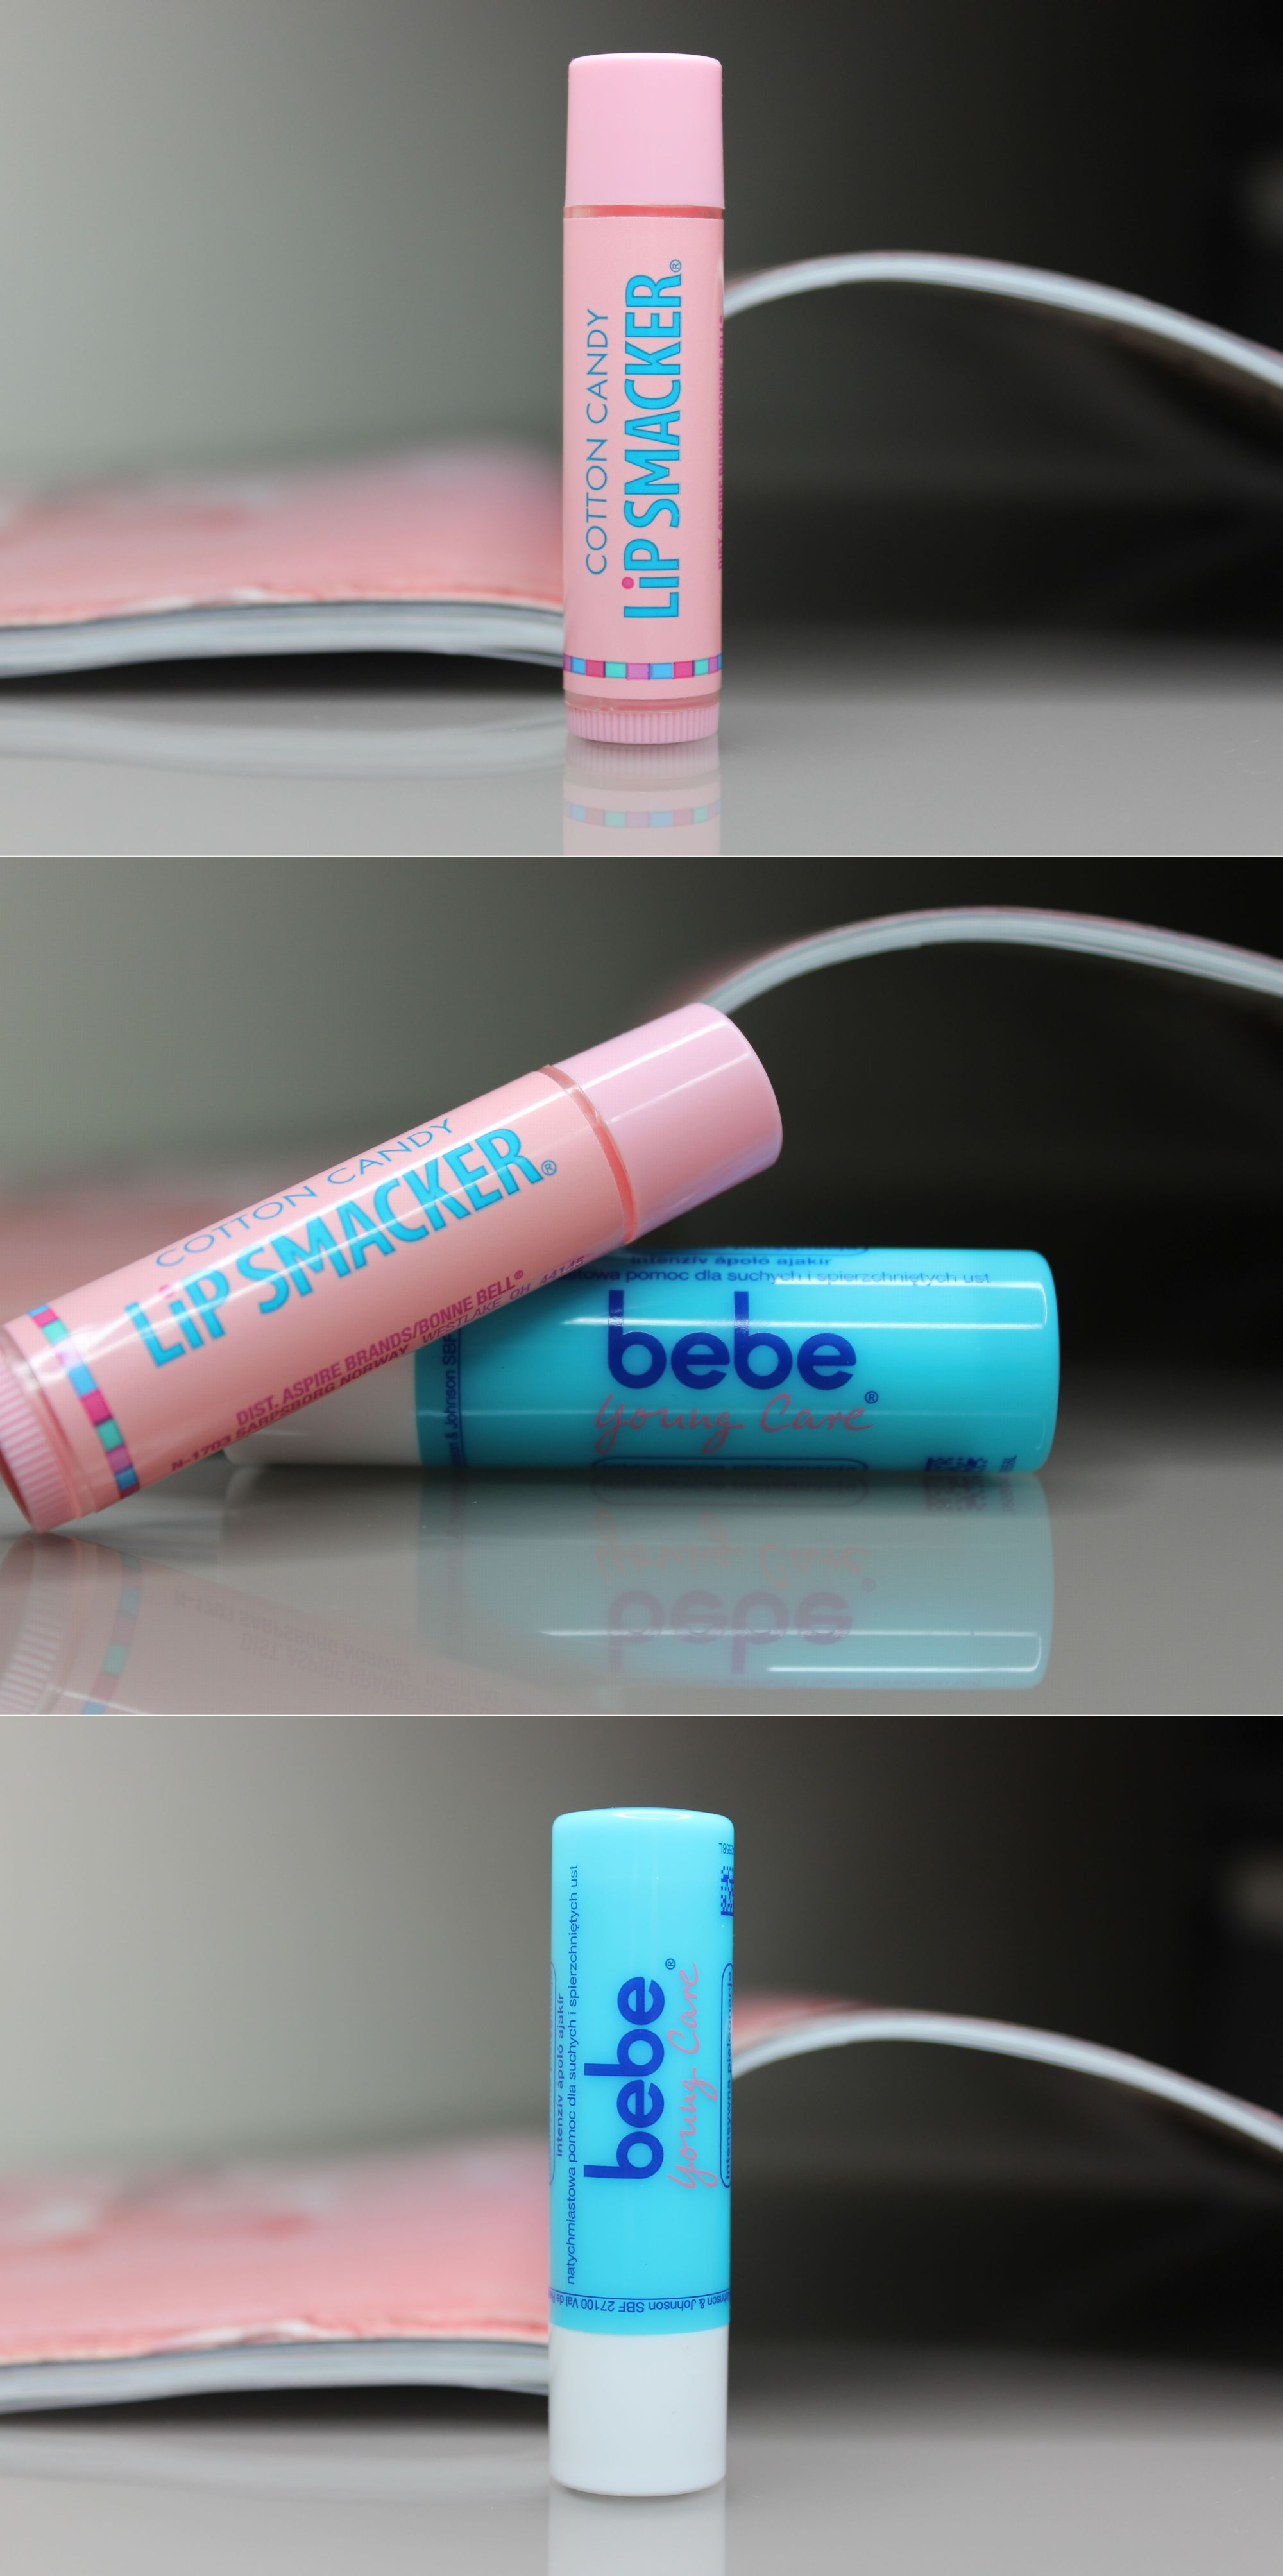 Lip Smacker in Cotton Candy & Bebe Intensive Care Lip Balms